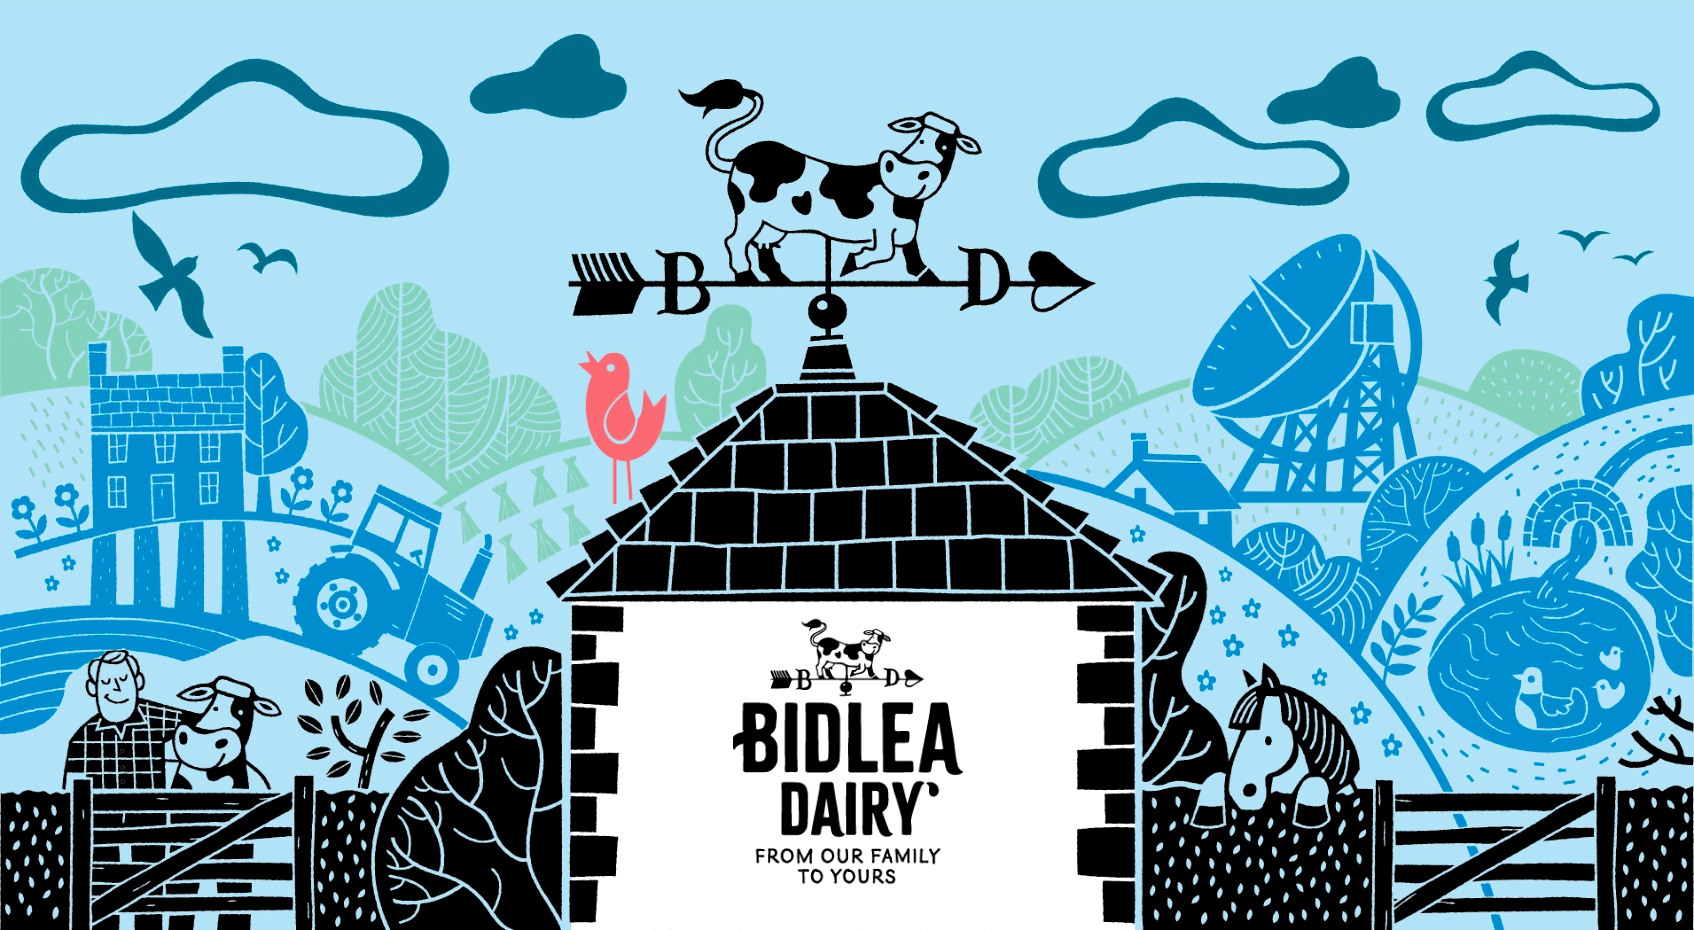 Bidlea Dairy from our family to yours